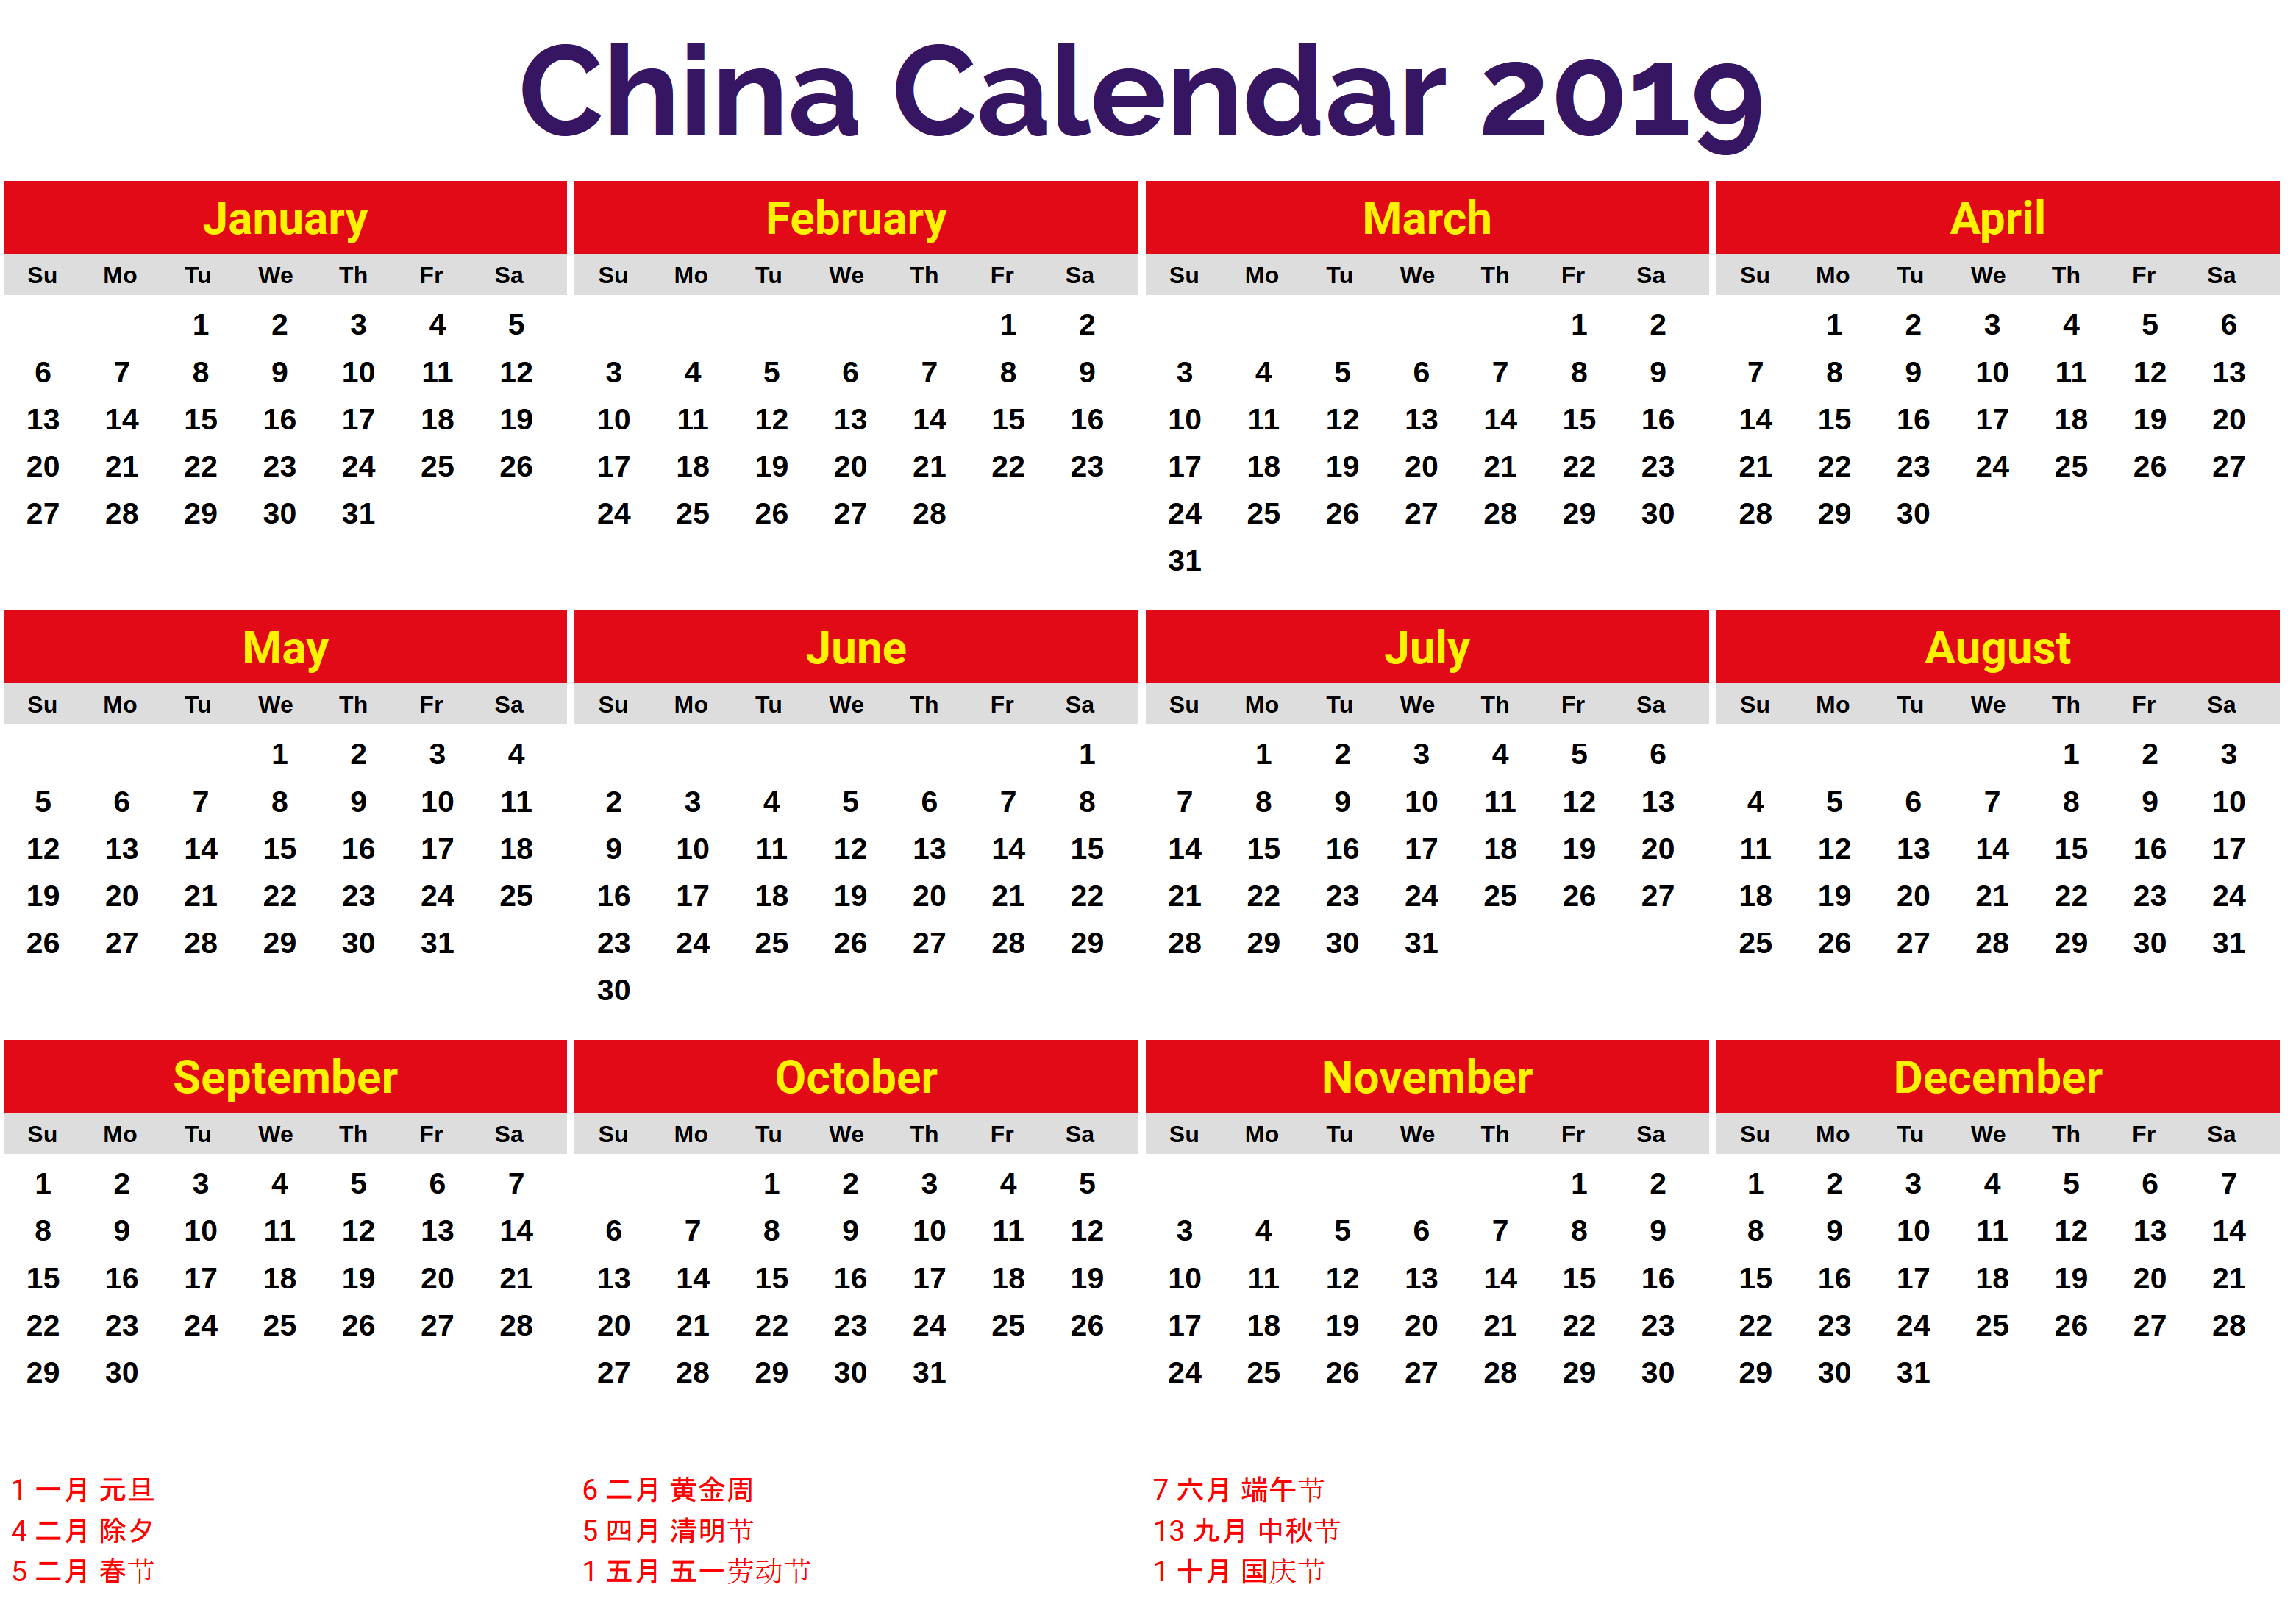 Chinese Lunar Year Calendar 2019 With Yearly Template Holidays Free Public